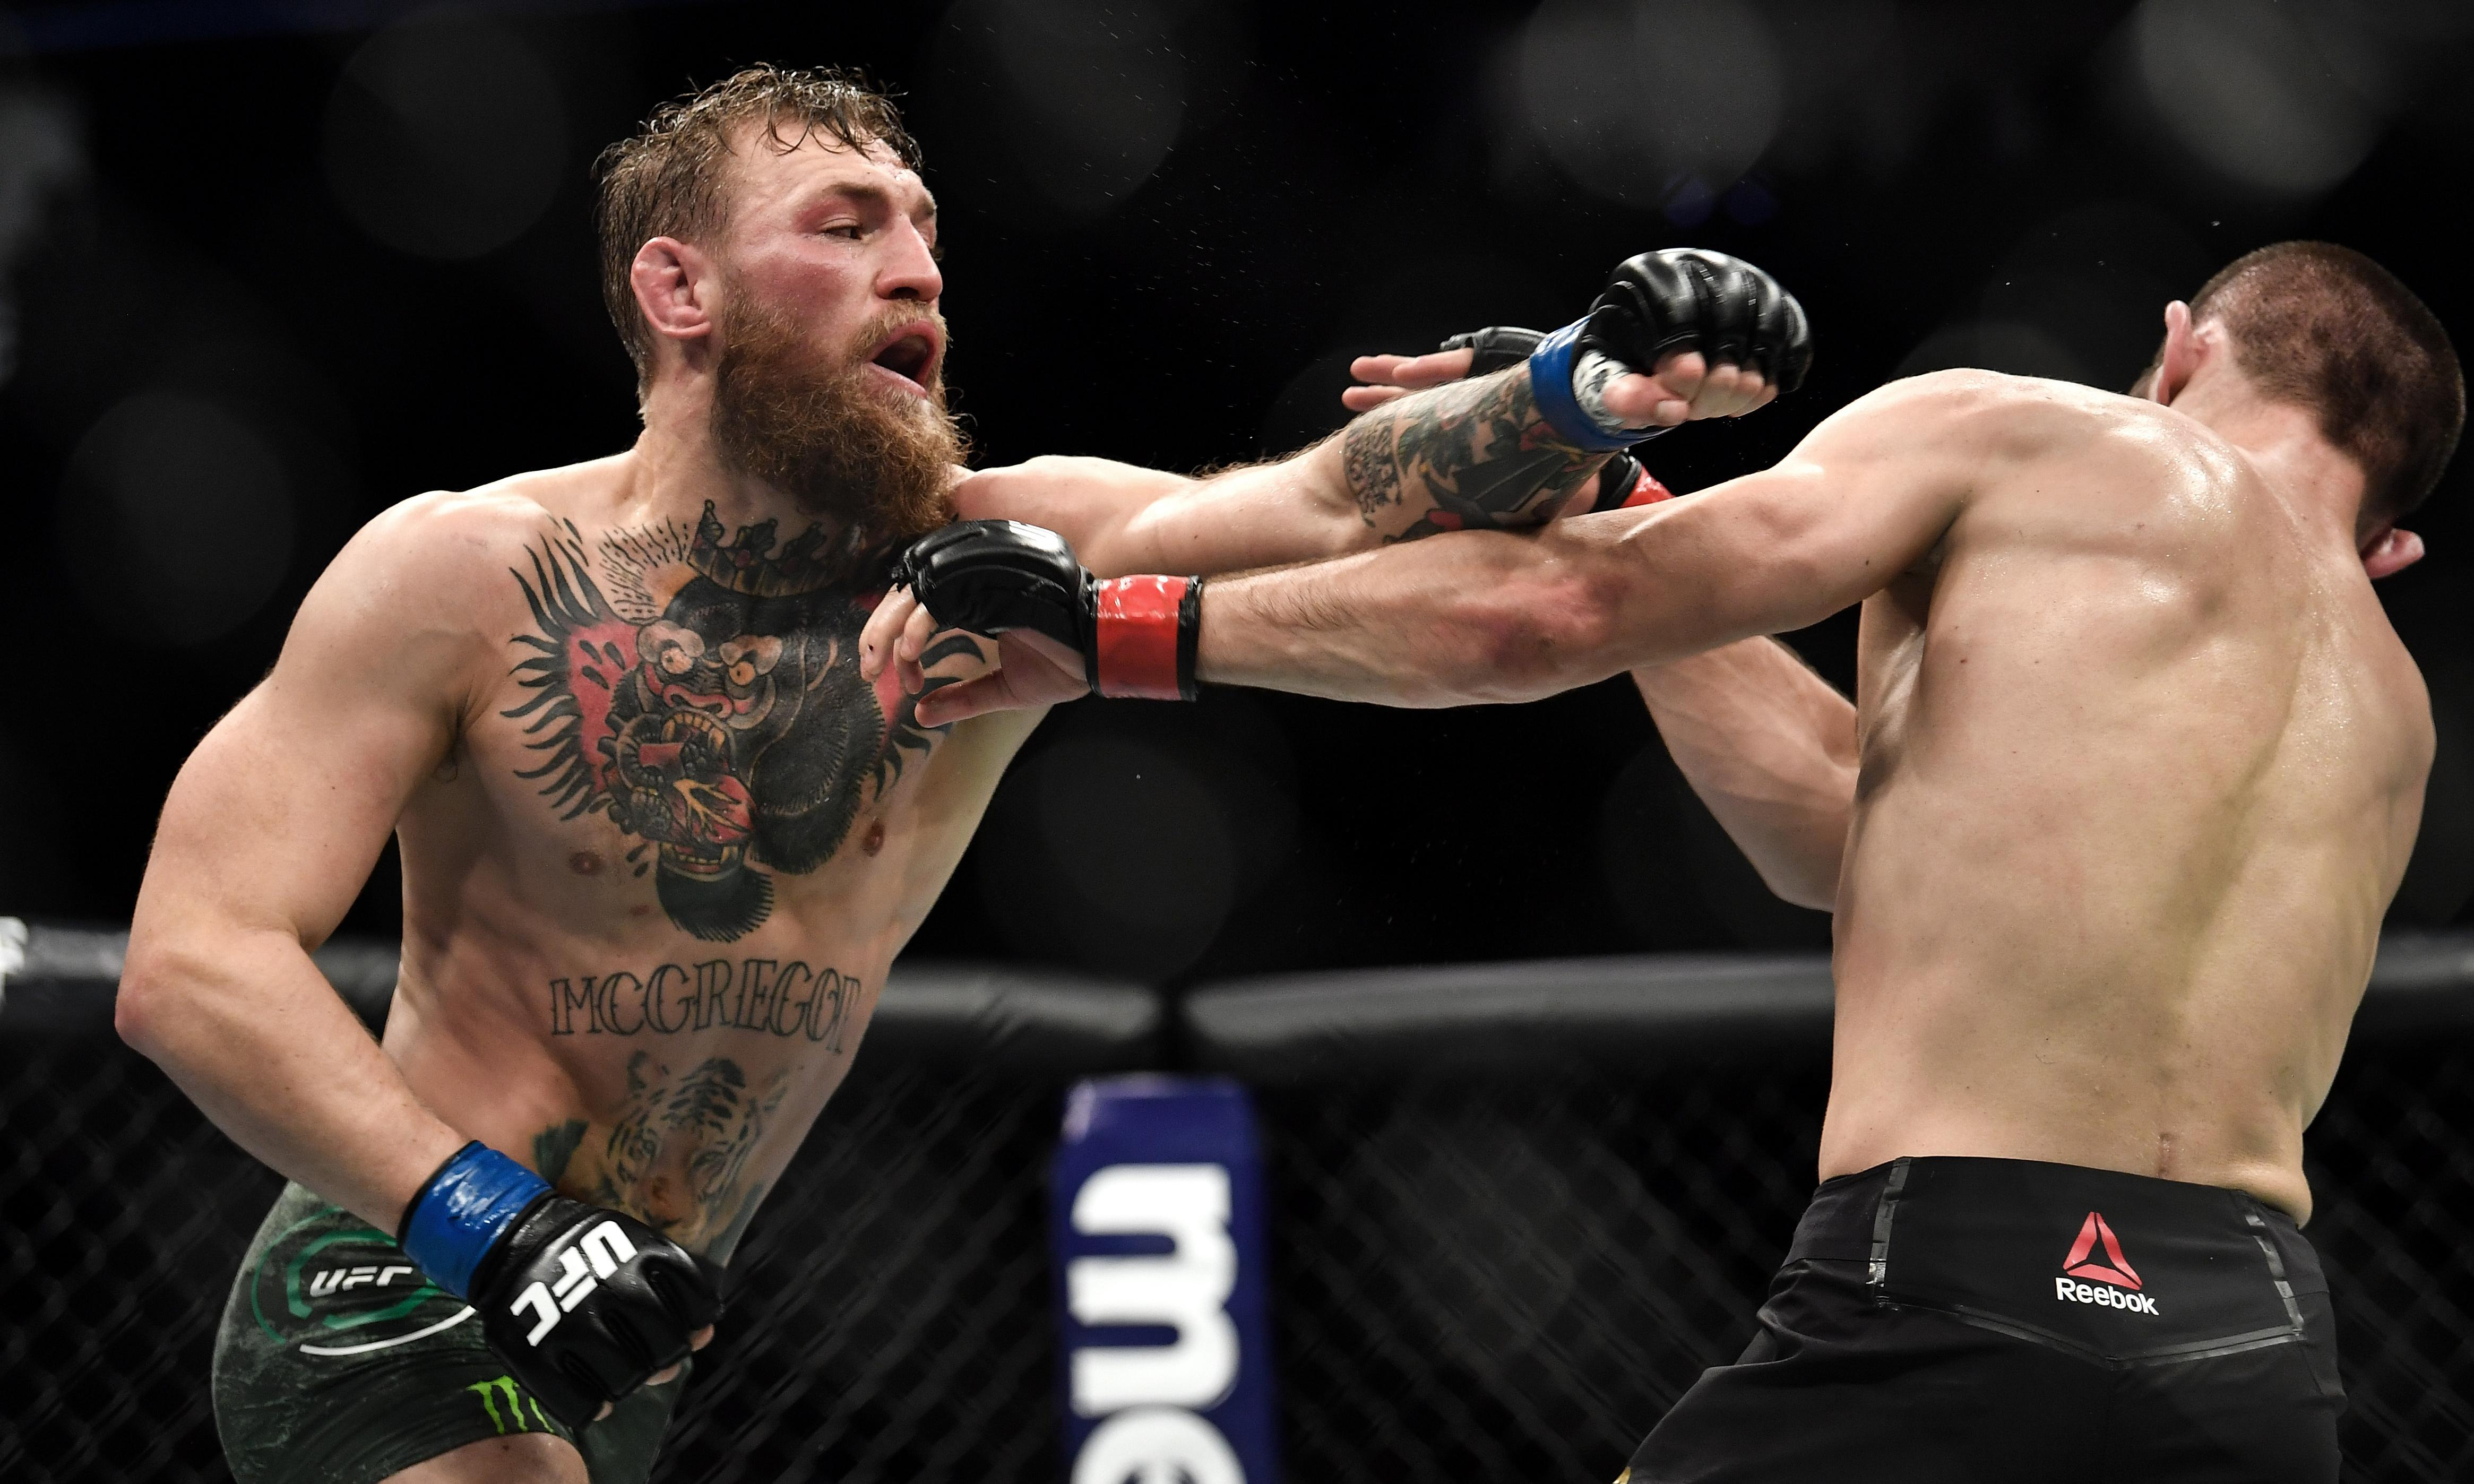 Conor McGregor: UFC star announces 'retirement from mixed martial arts'